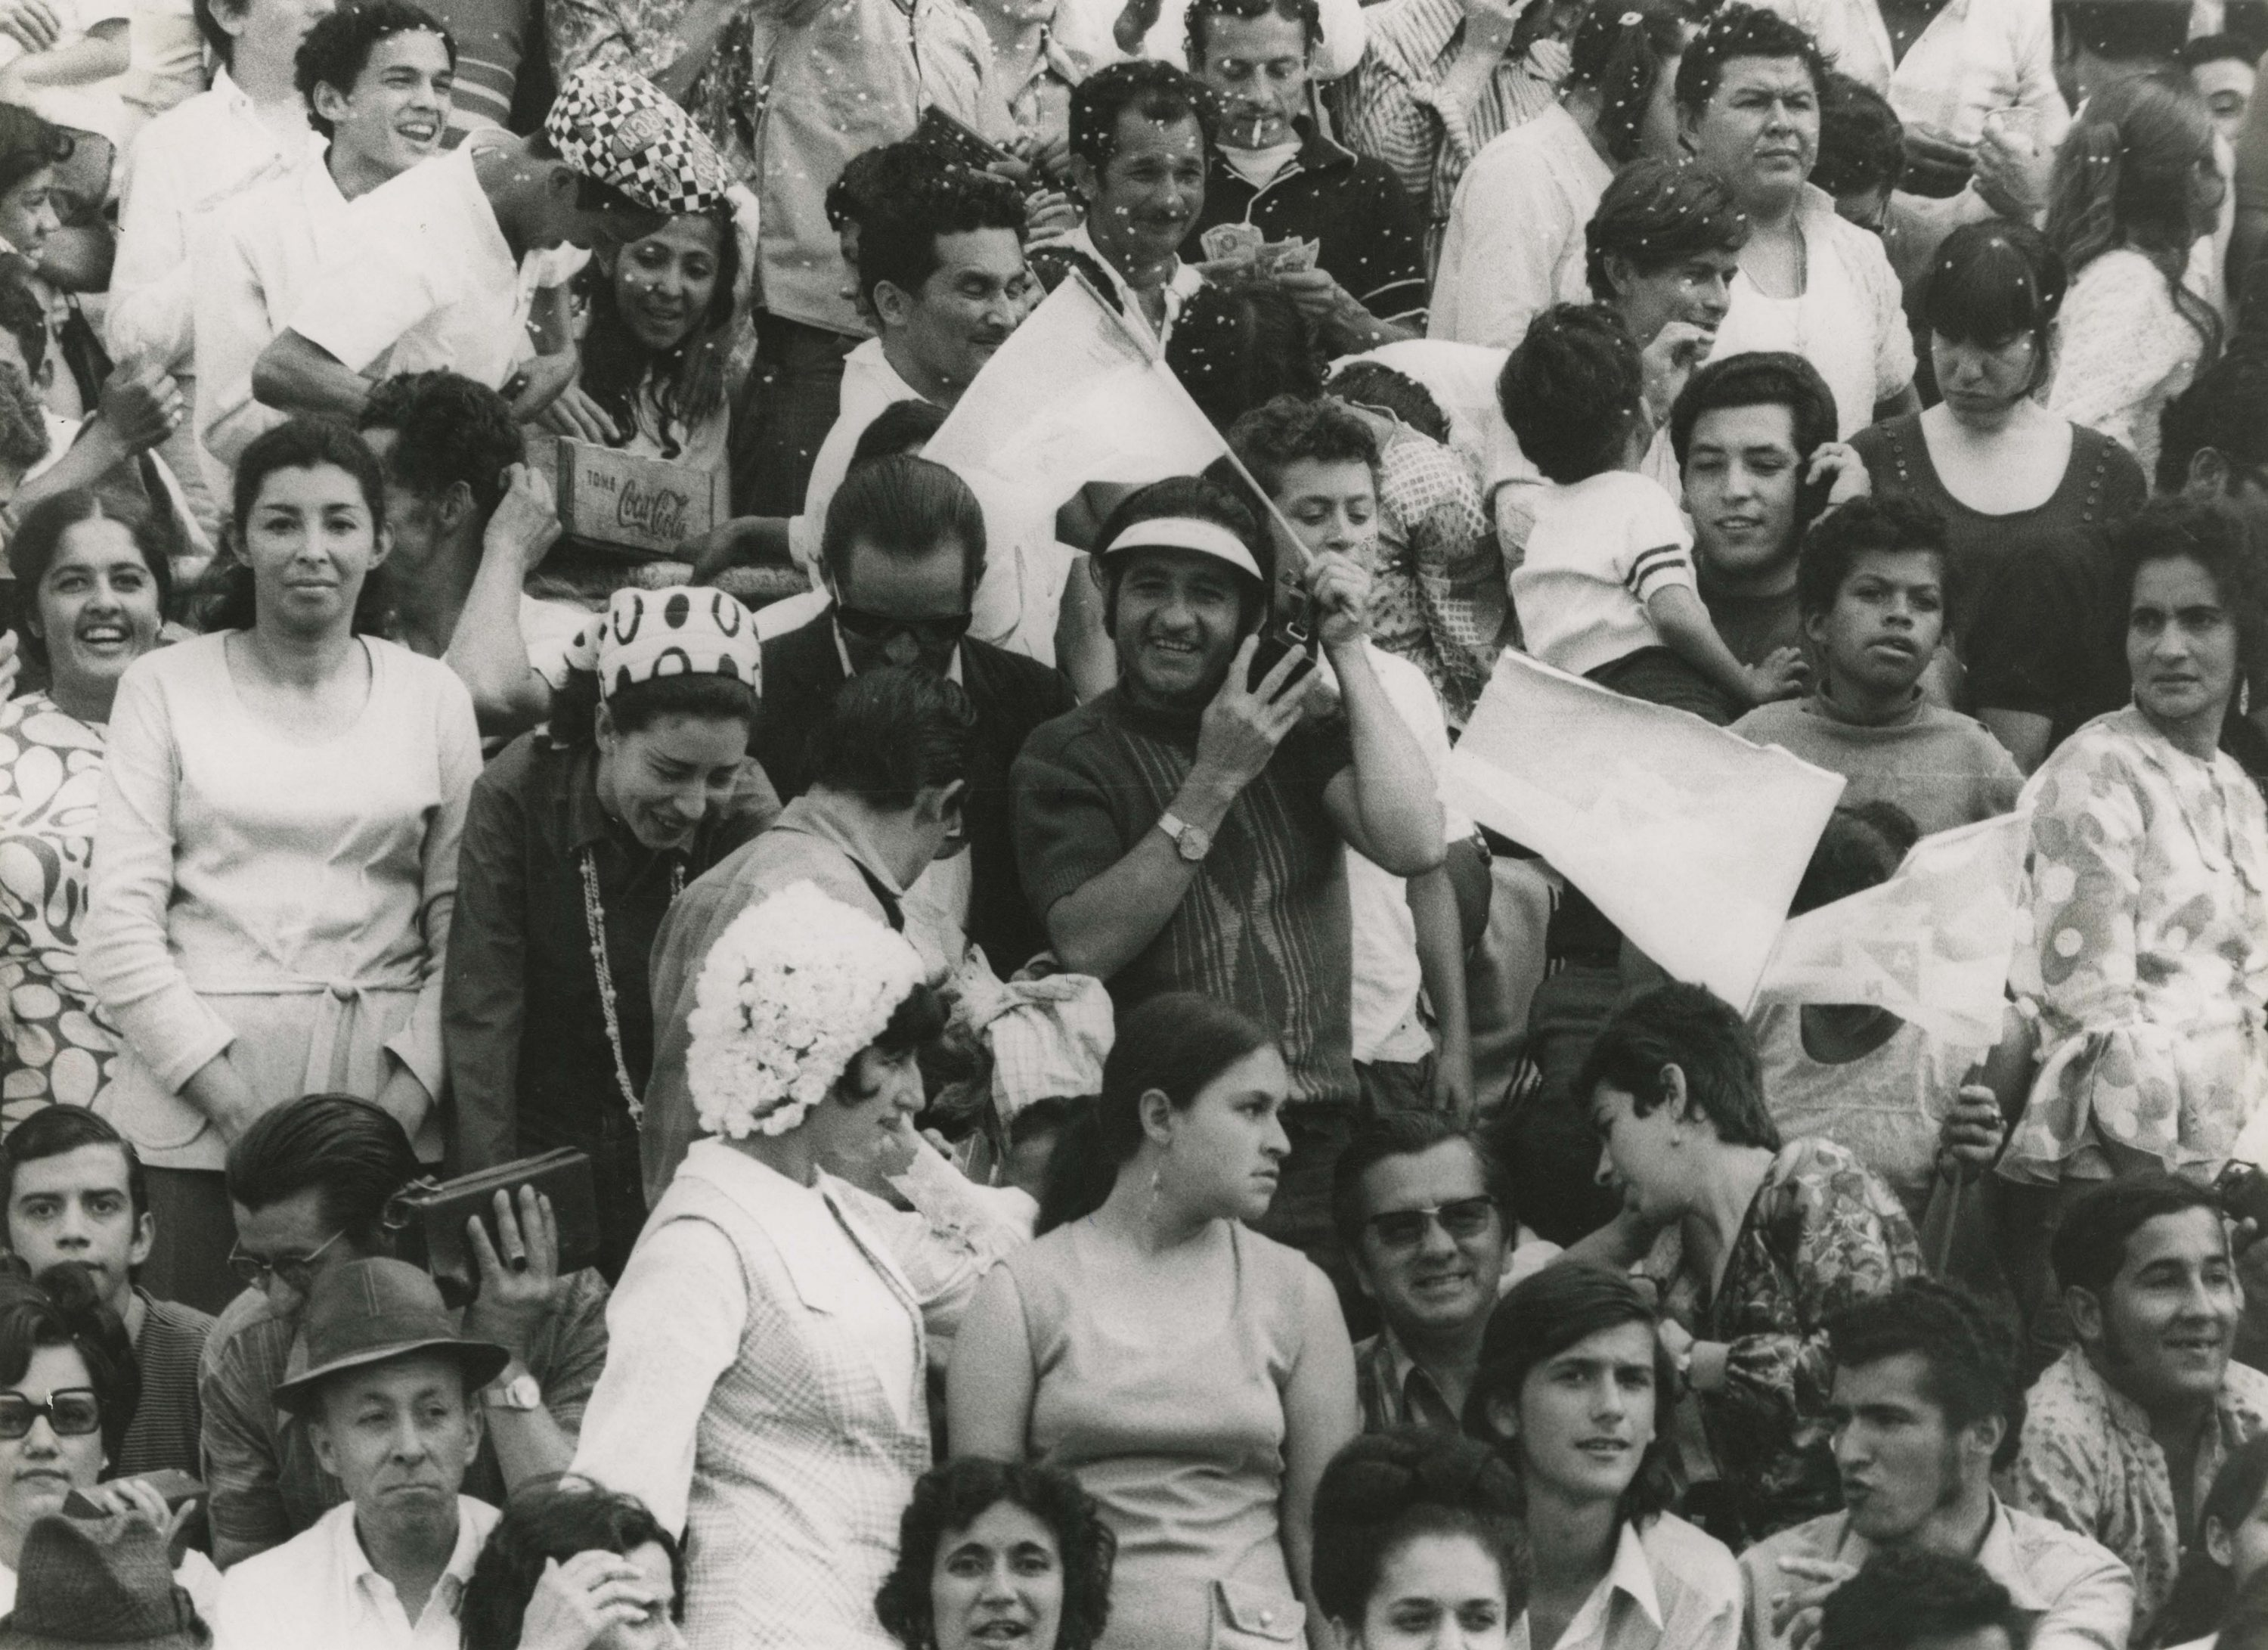 Football fans, Colombia, 1971. Copyright free*